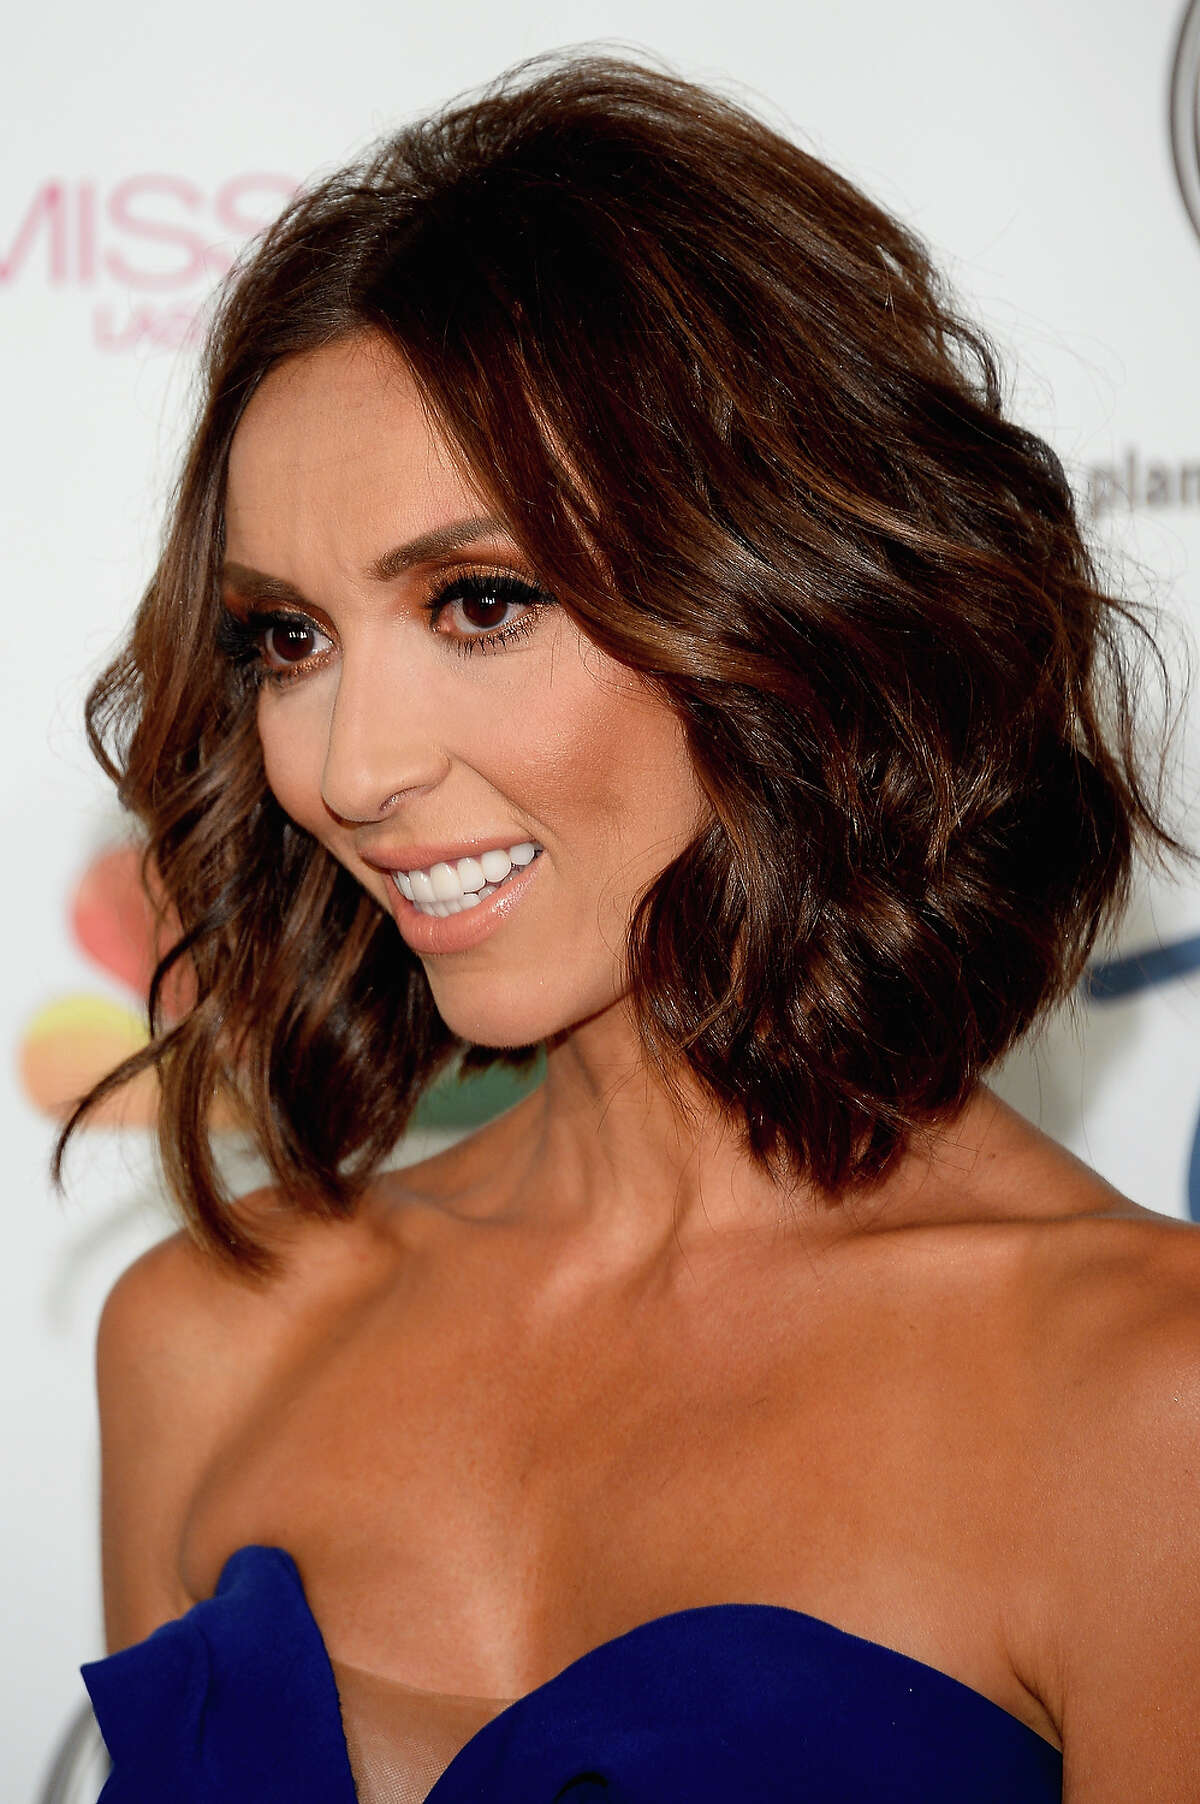 Television personality and pageant co-host Giuliana Rancic arrives at the 2013 Miss USA pageant at Planet Hollywood Resort & Casino on June 16, 2013 in Las Vegas, Nevada.